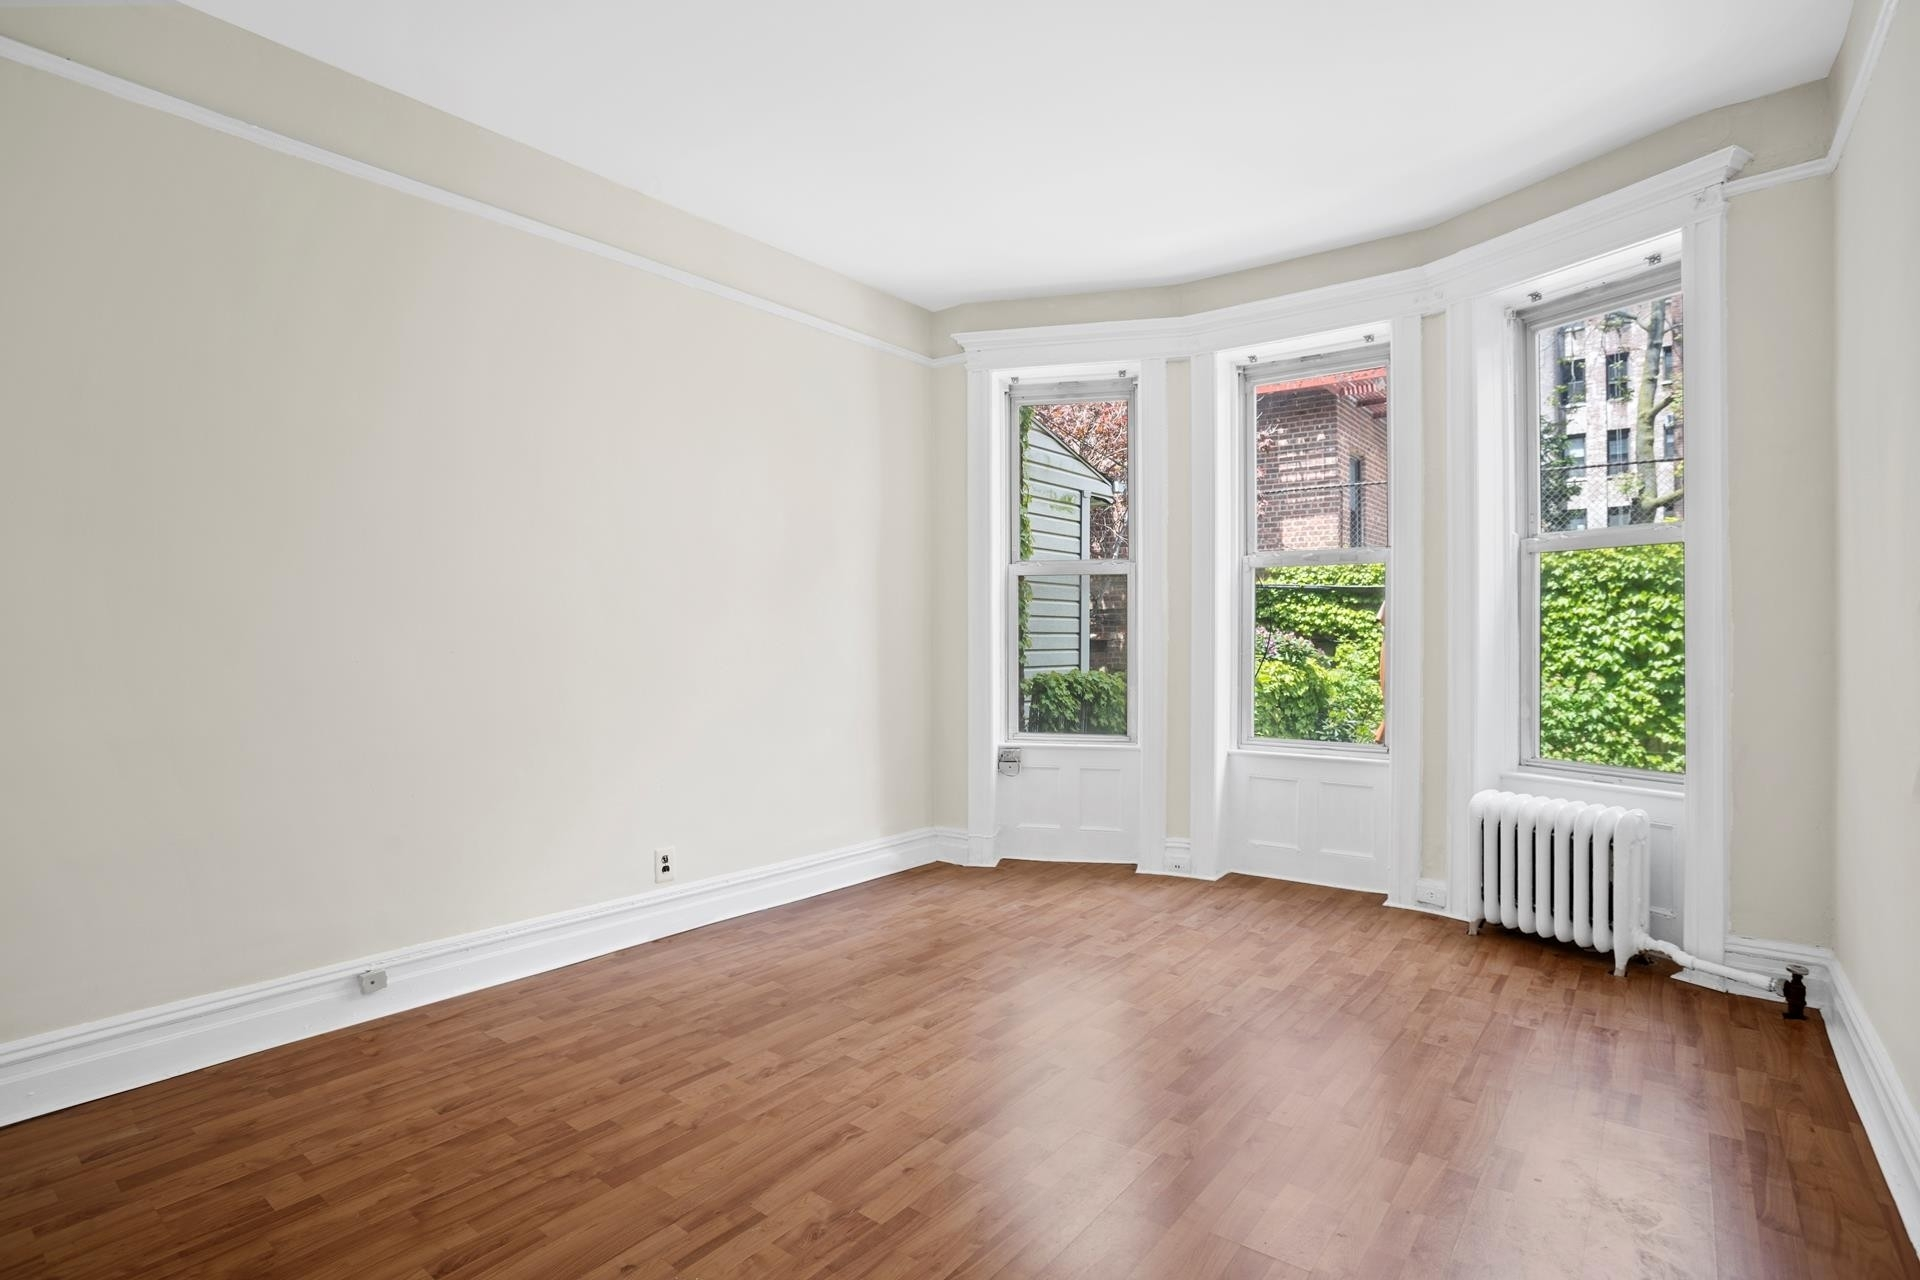 Property en 23 Kermit Pl, 1 Brooklyn